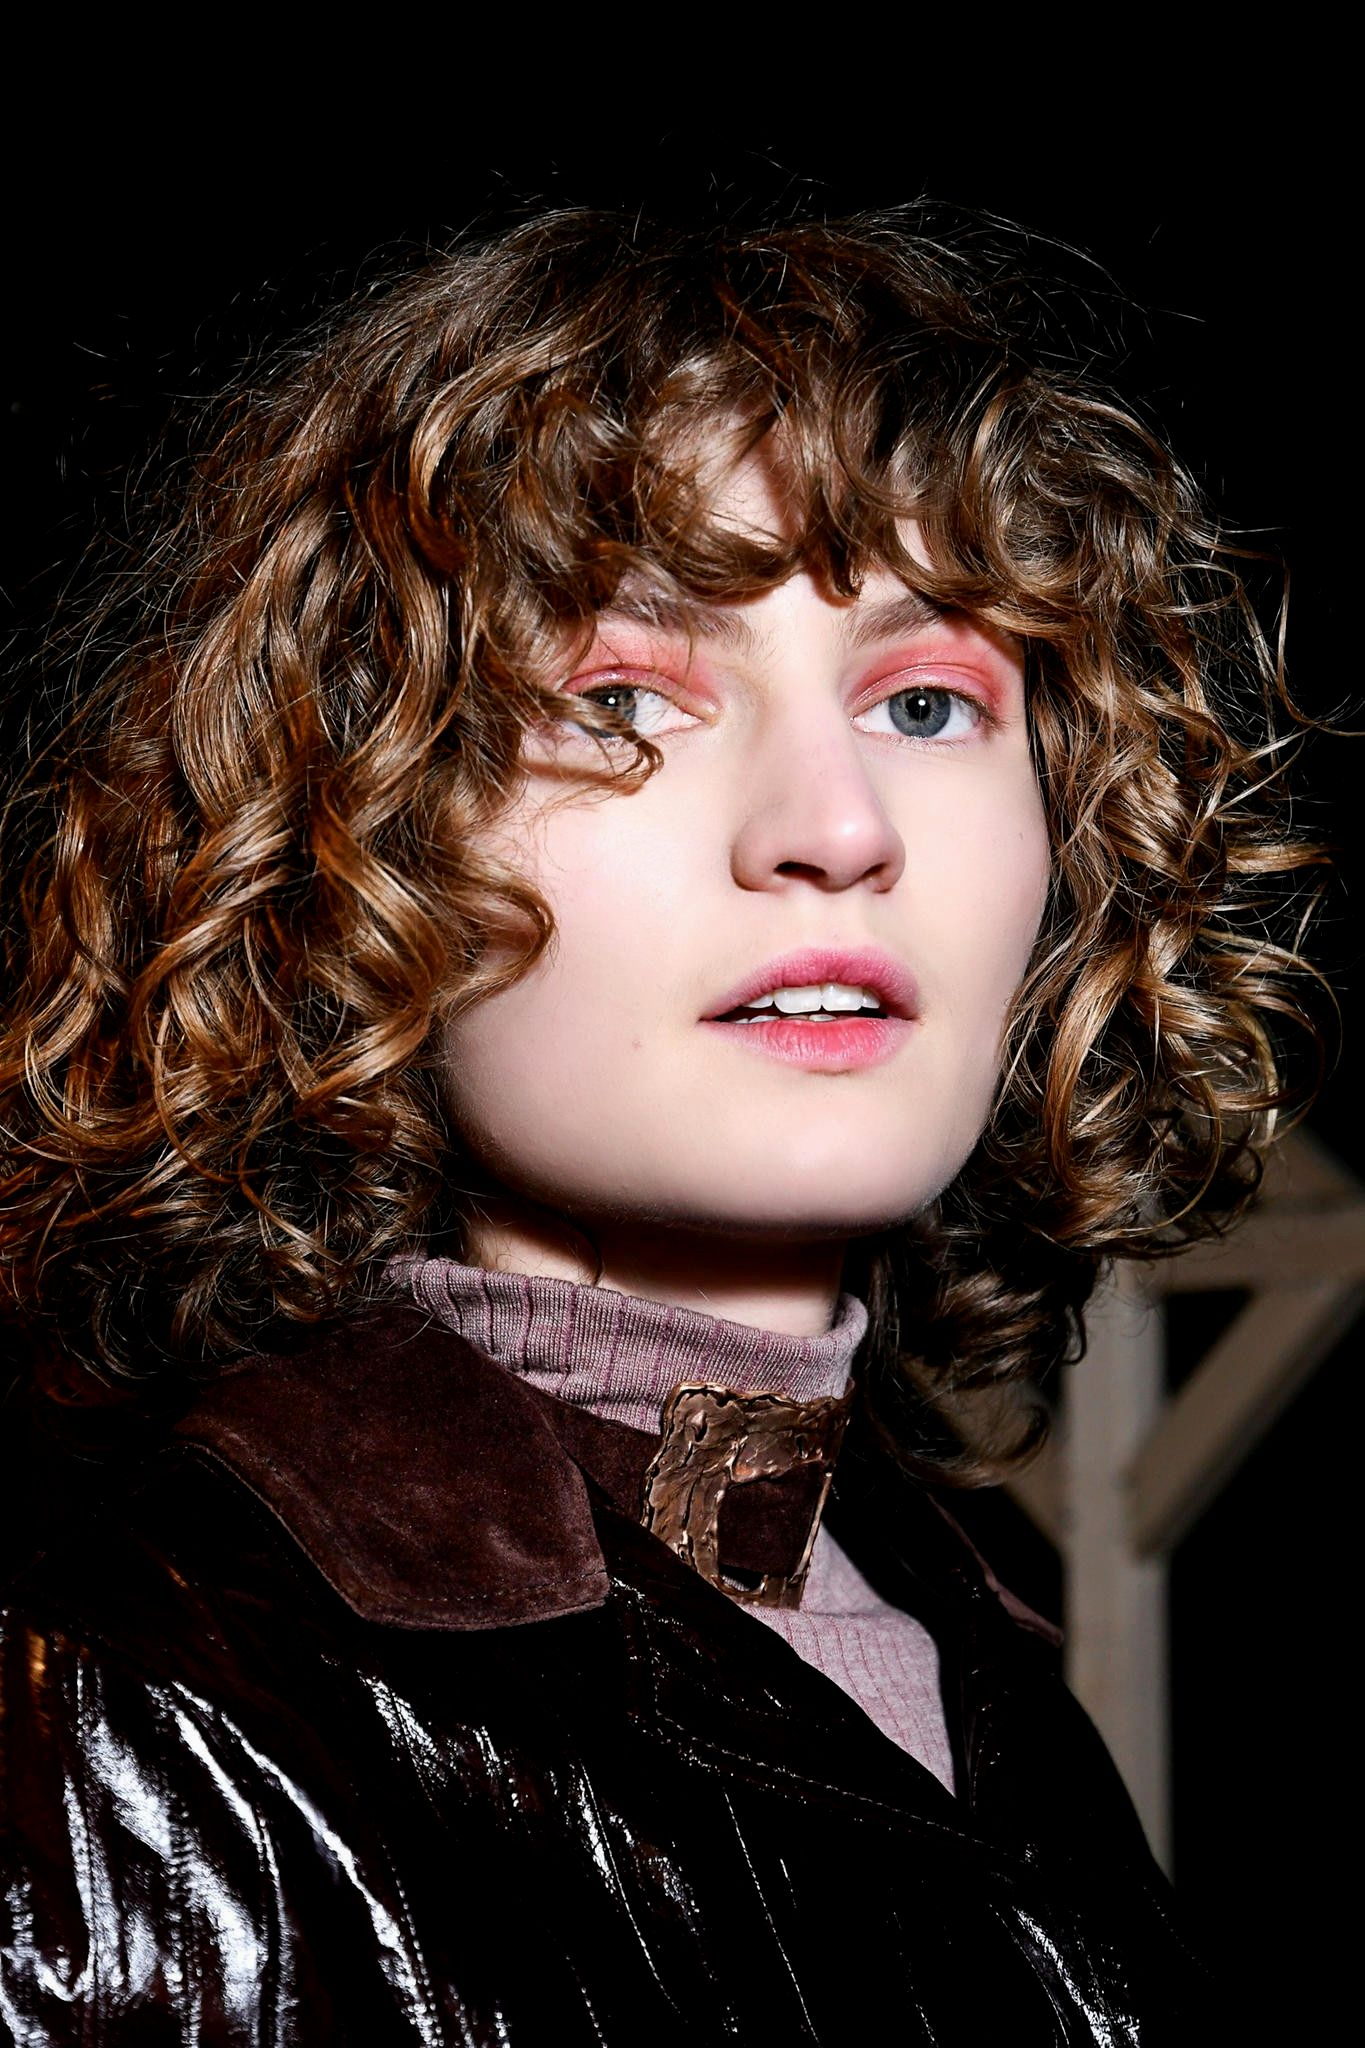 terribly cool hairstyles with natural curls build layout-Lovely hairstyles with nature curls ideas